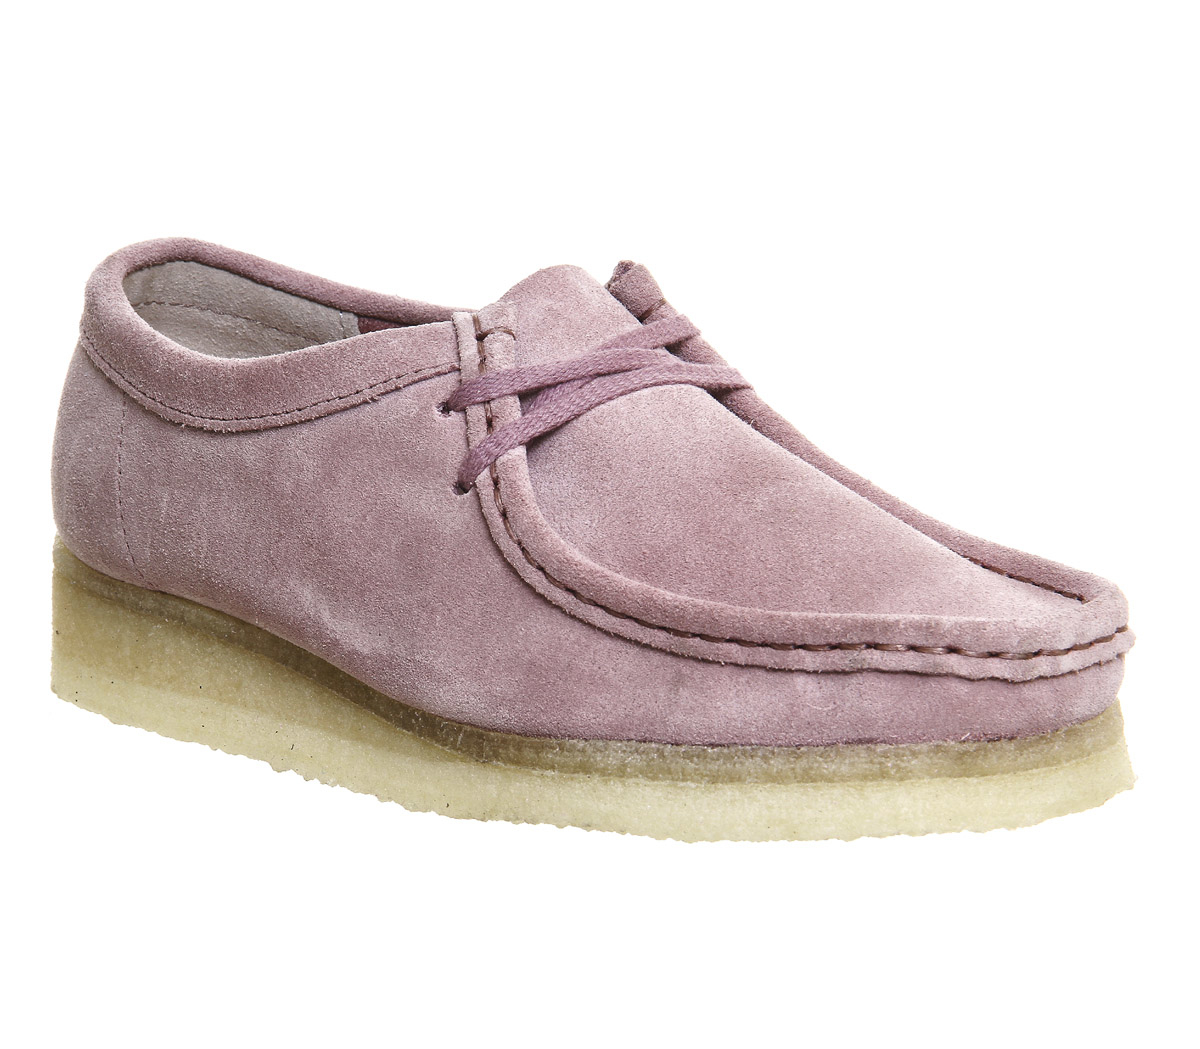 clarks wallabee suede ankle boots in pink lyst